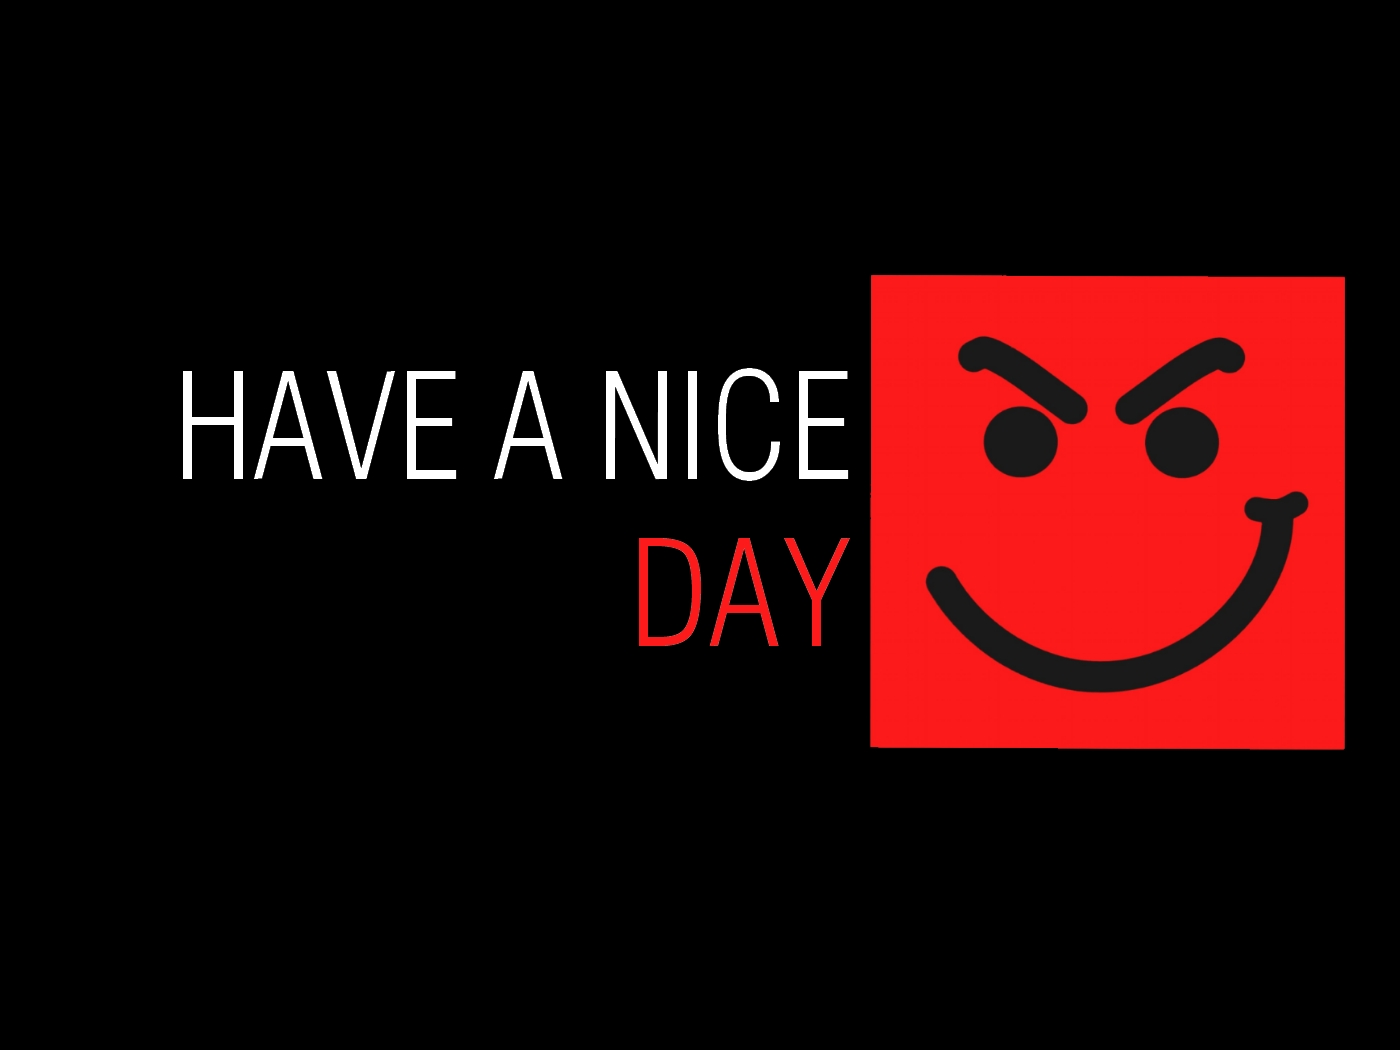 have a nice day wallpaper desktop - Mobile wallpapers